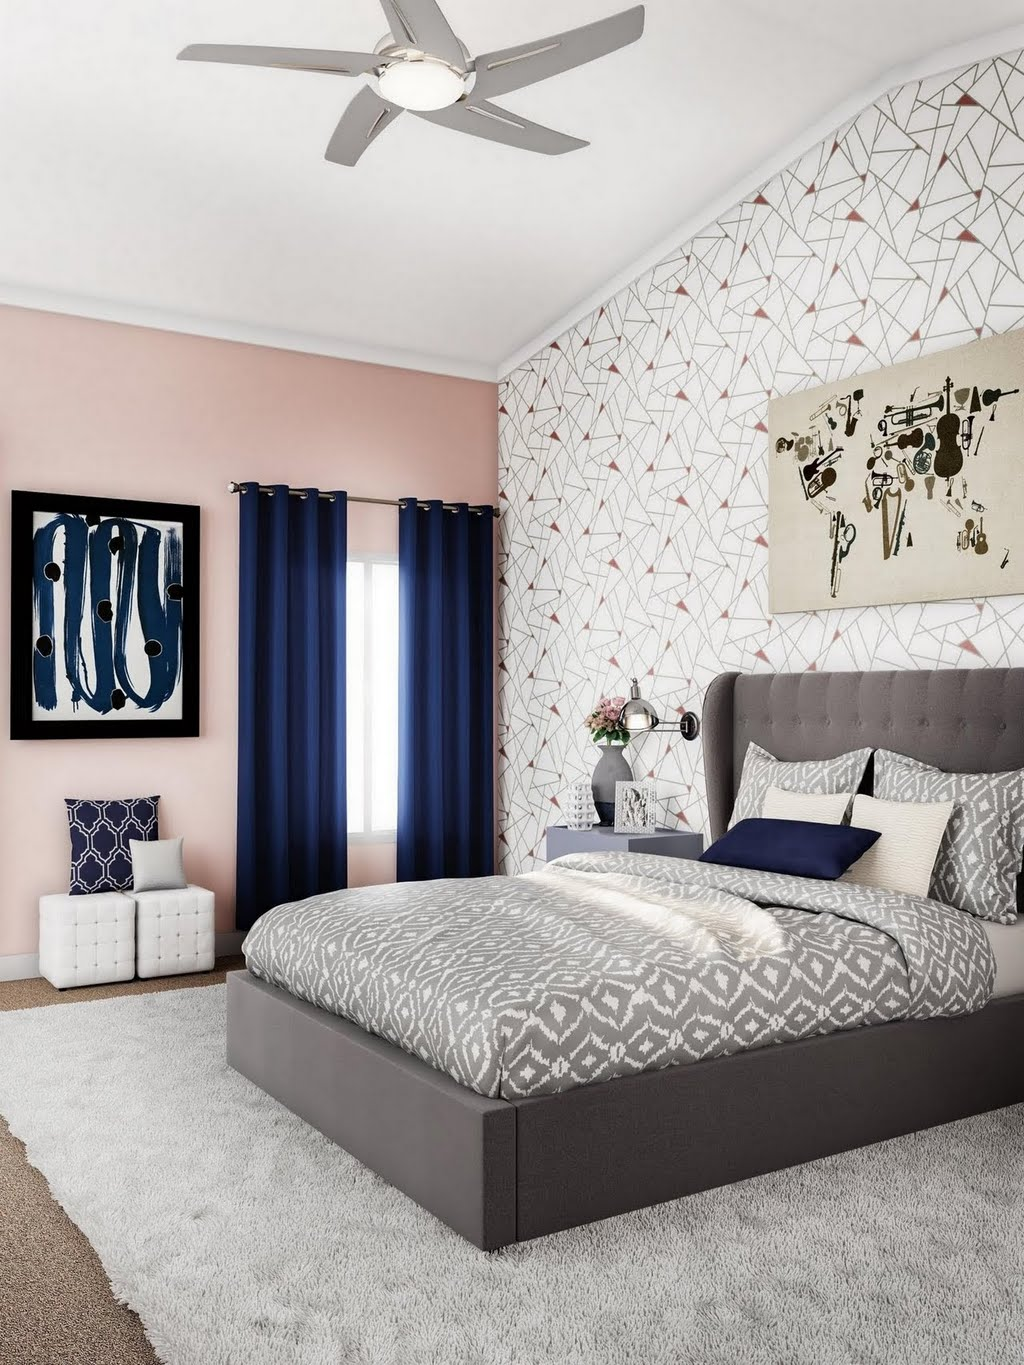 Modern Pink and Gray Bedroom with